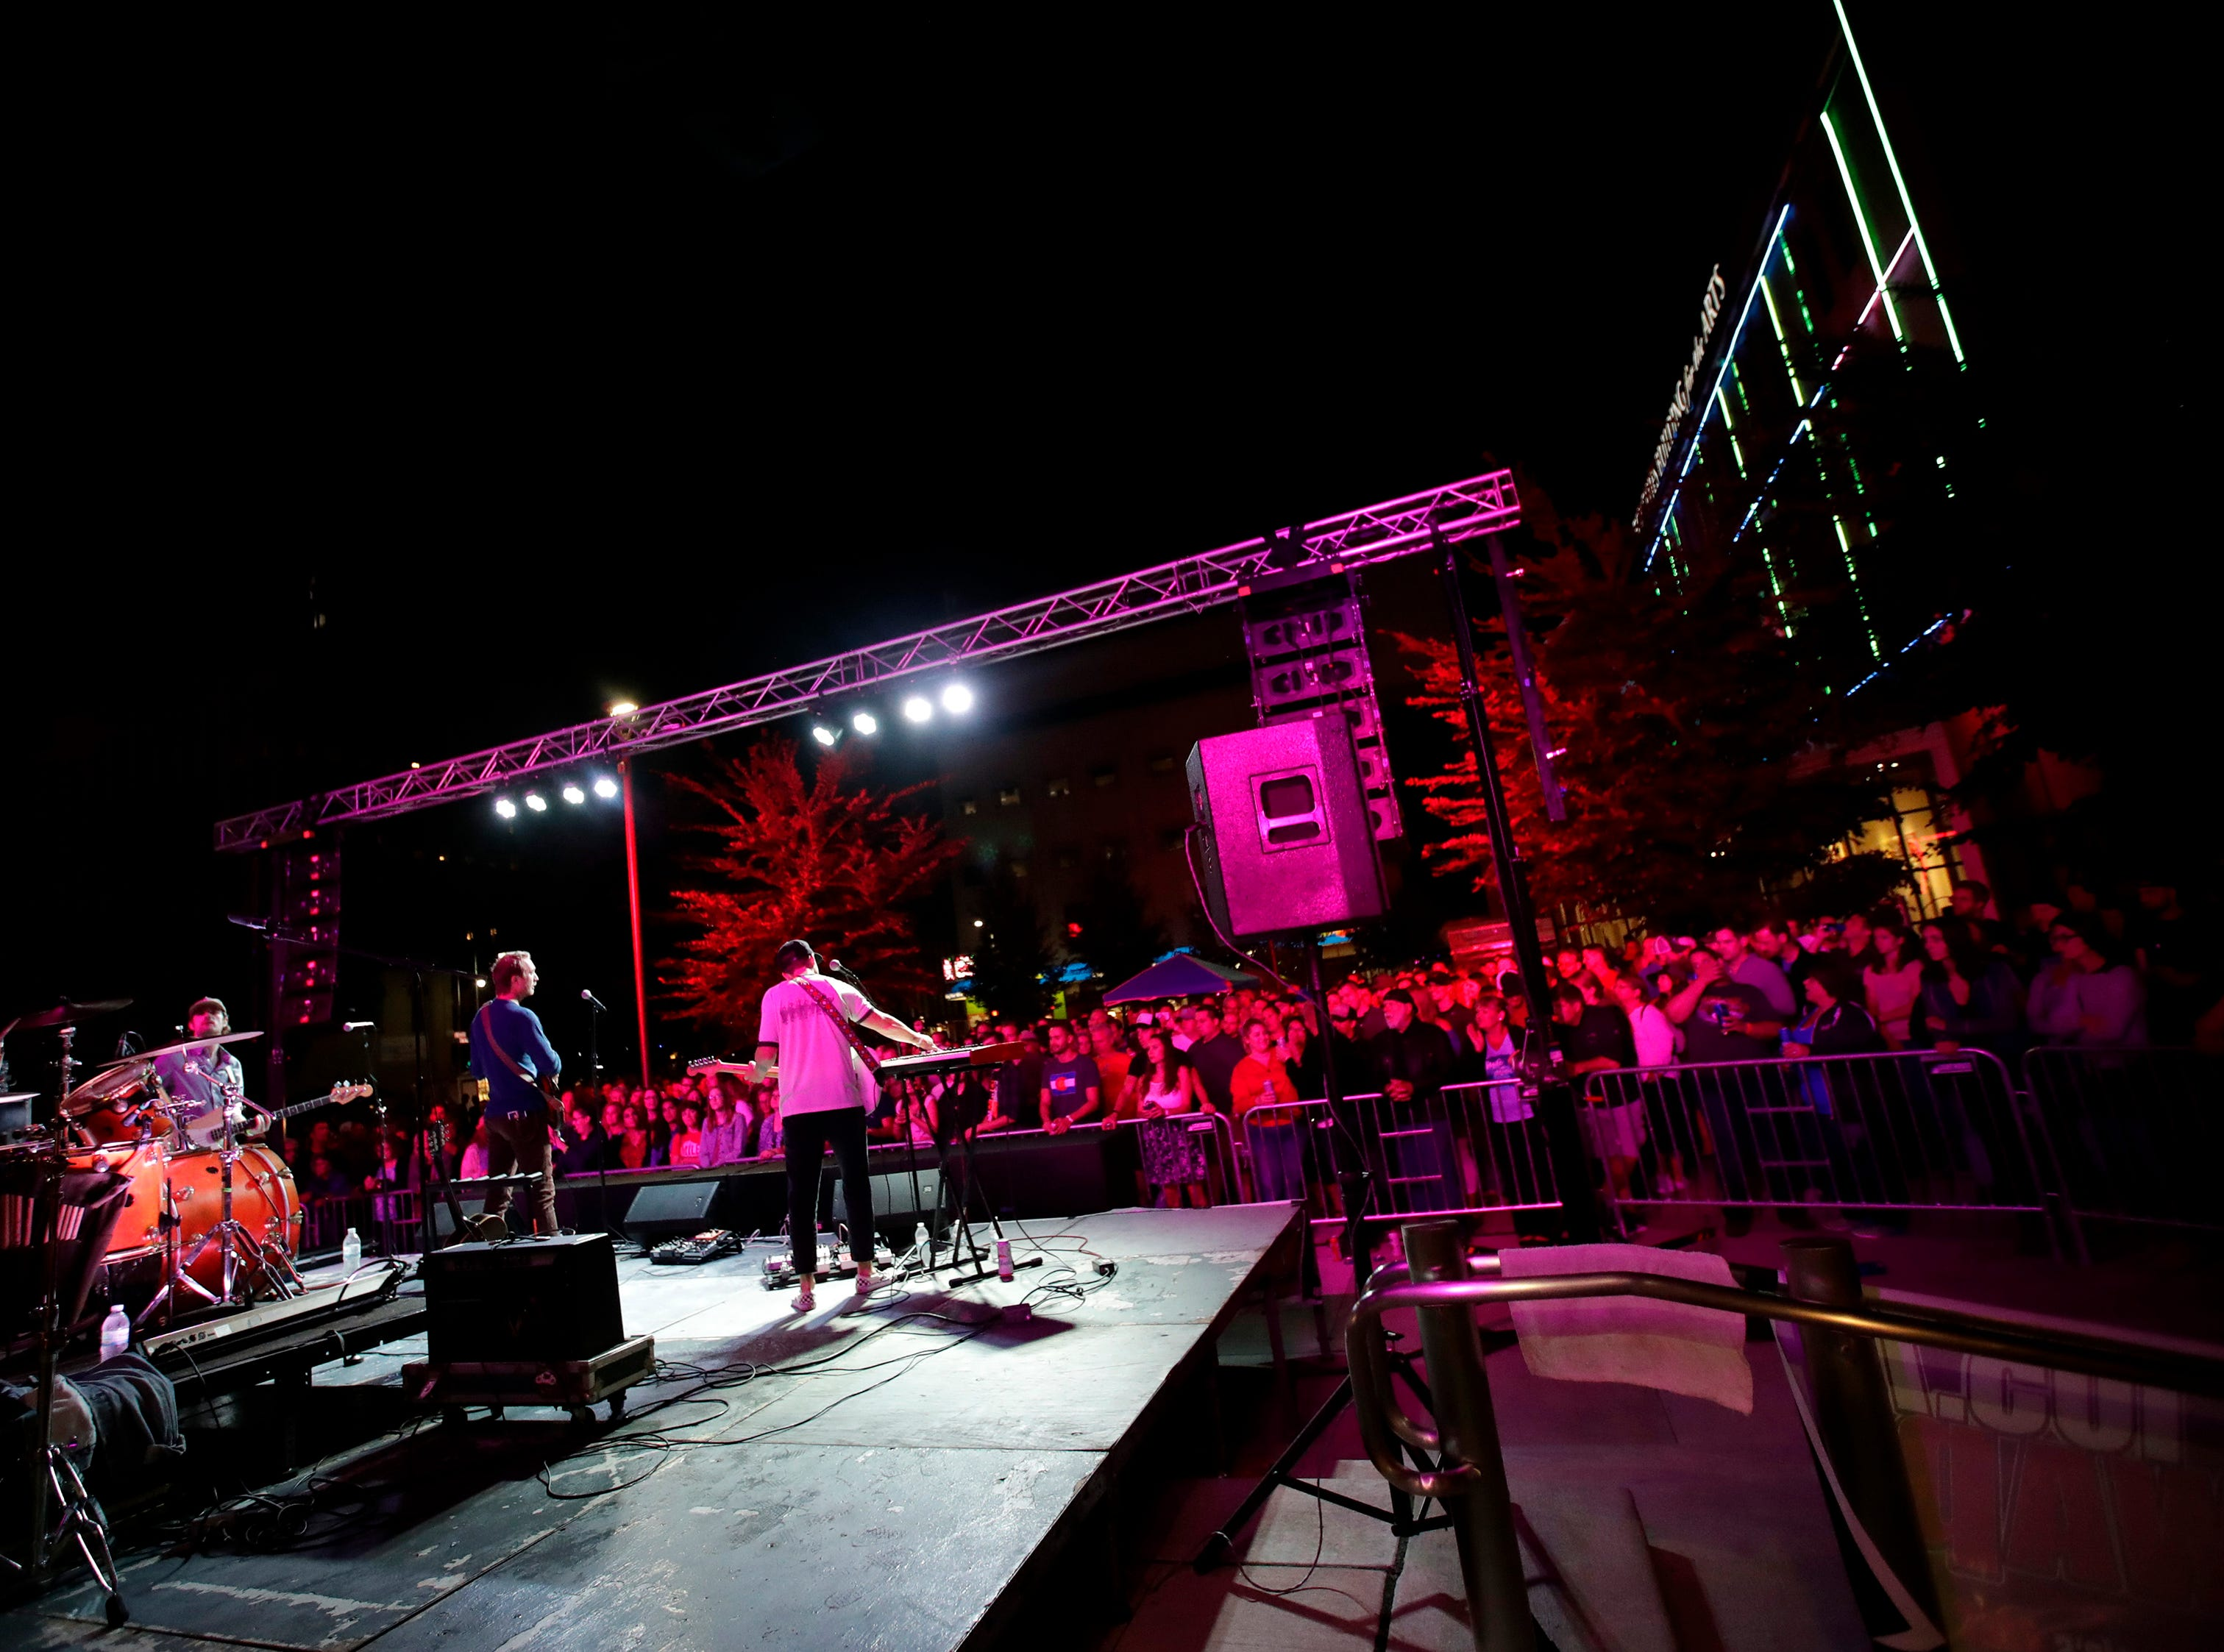 Wilderado performs in Houdini Plaza during the first day of Mile of Music Thursday, Aug. 2, 2018, in Appleton, Wis.Danny Damiani/USA TODAY NETWORK-Wisconsin